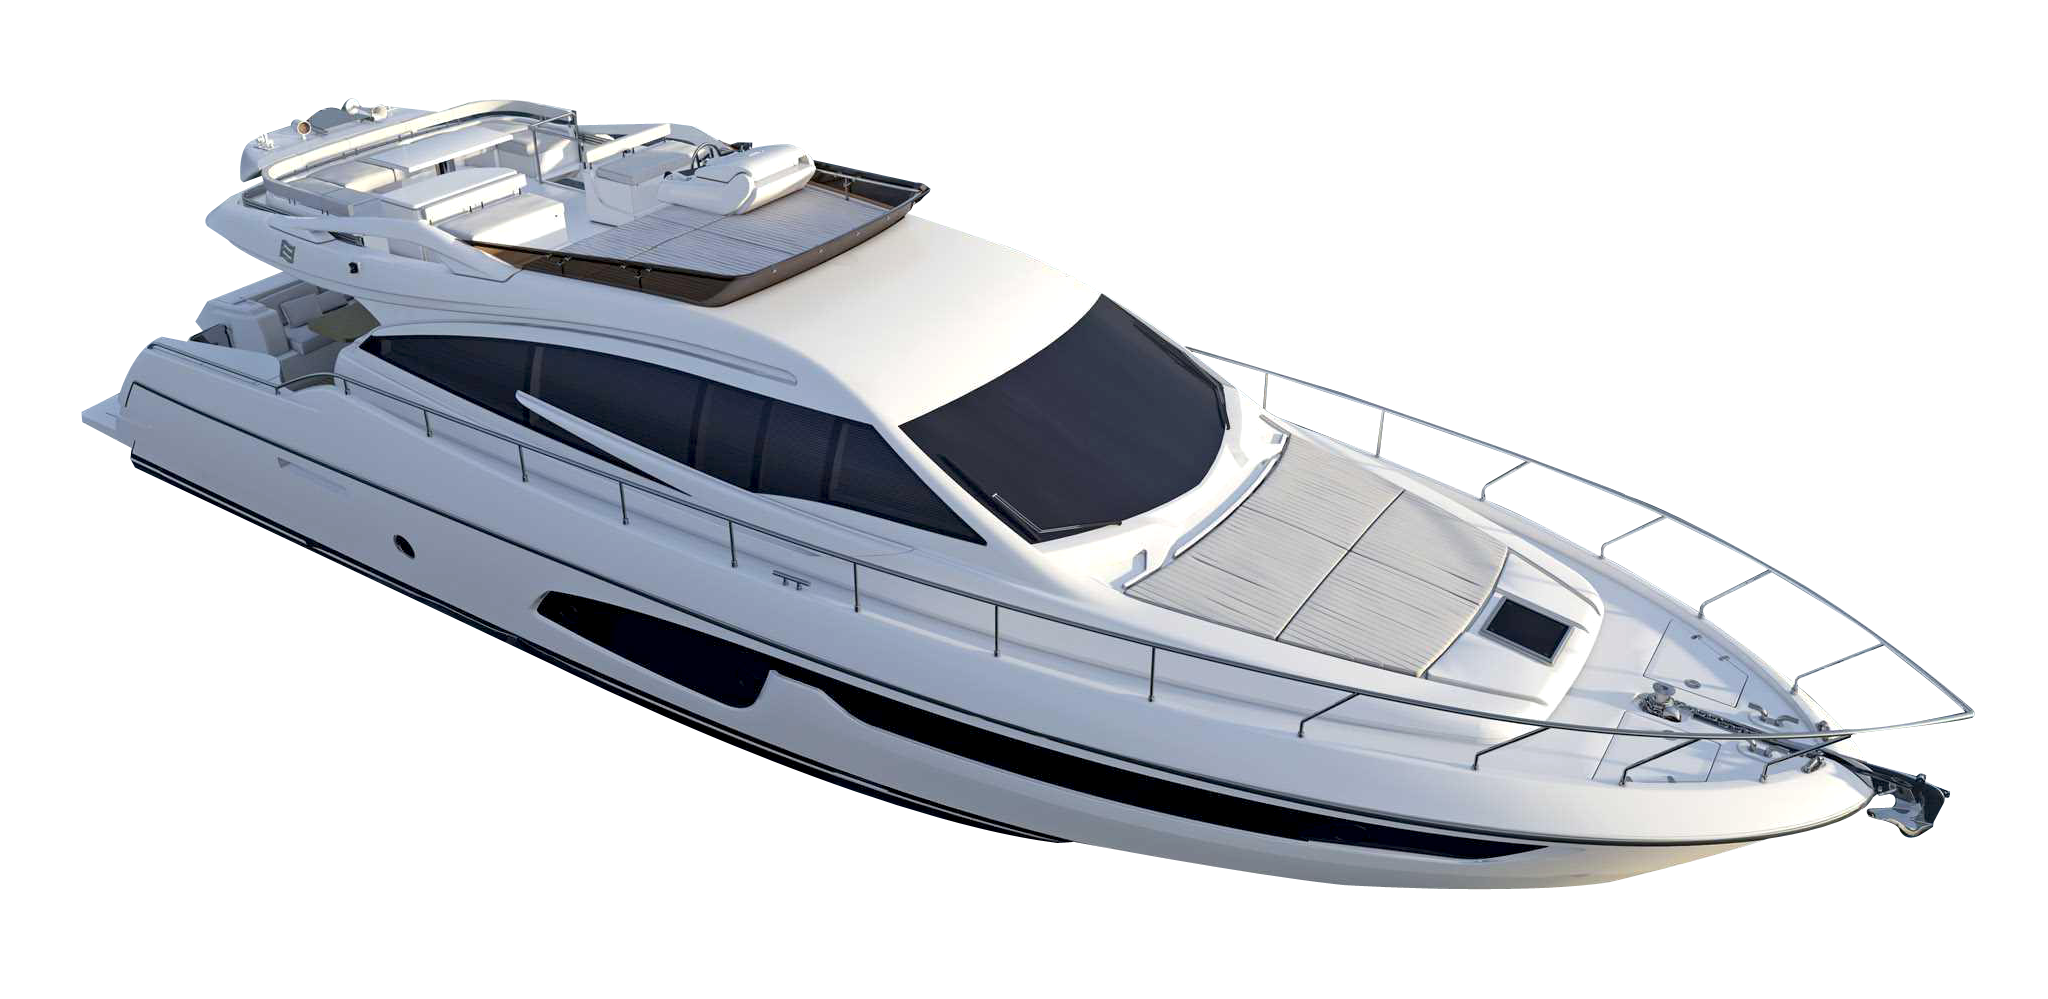 Yacht Boat Png Transparent Image - Yacht, Transparent background PNG HD thumbnail